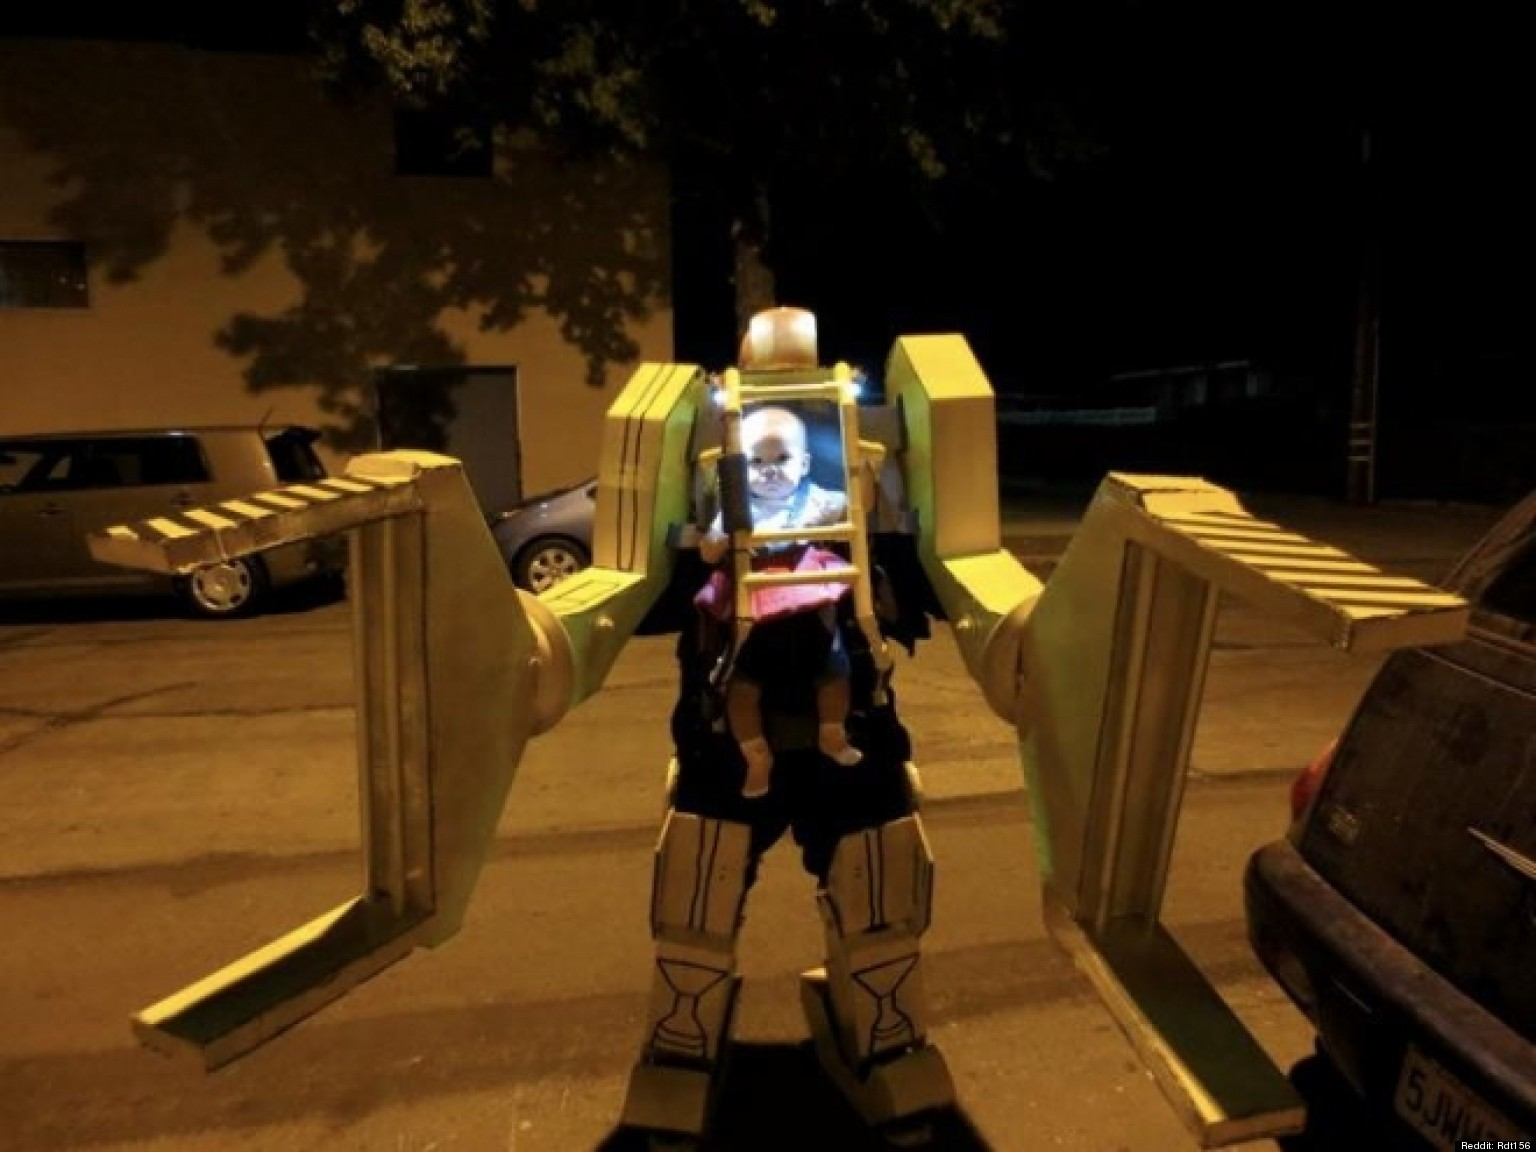 baby ripley halloween costume aliens work loader is best dad baby costume ever photo huffpost - Aliens Halloween Costume Baby